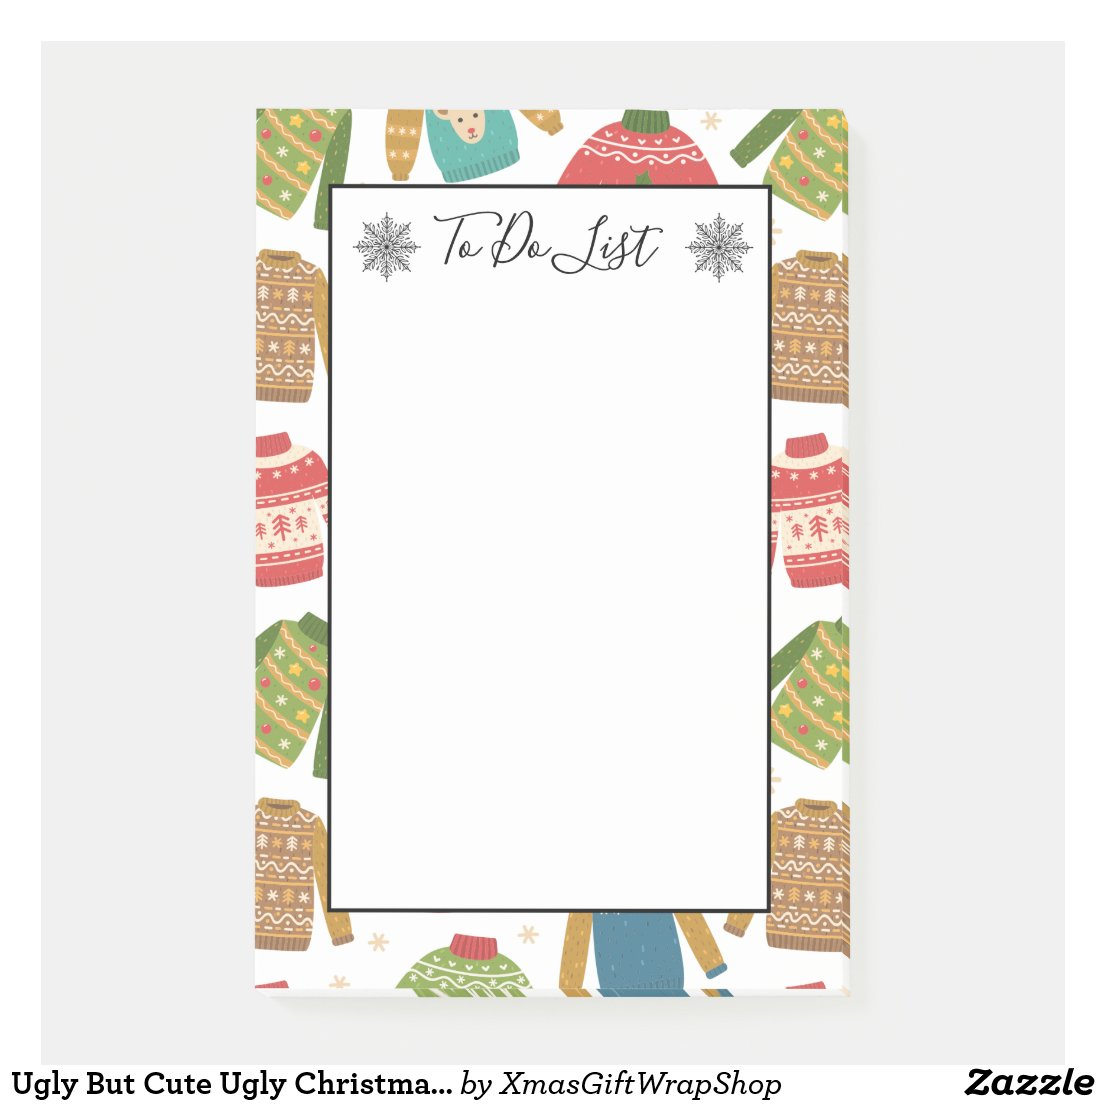 Ugly But Cute Ugly Christmas Sweaters To Do List Post-it Notes